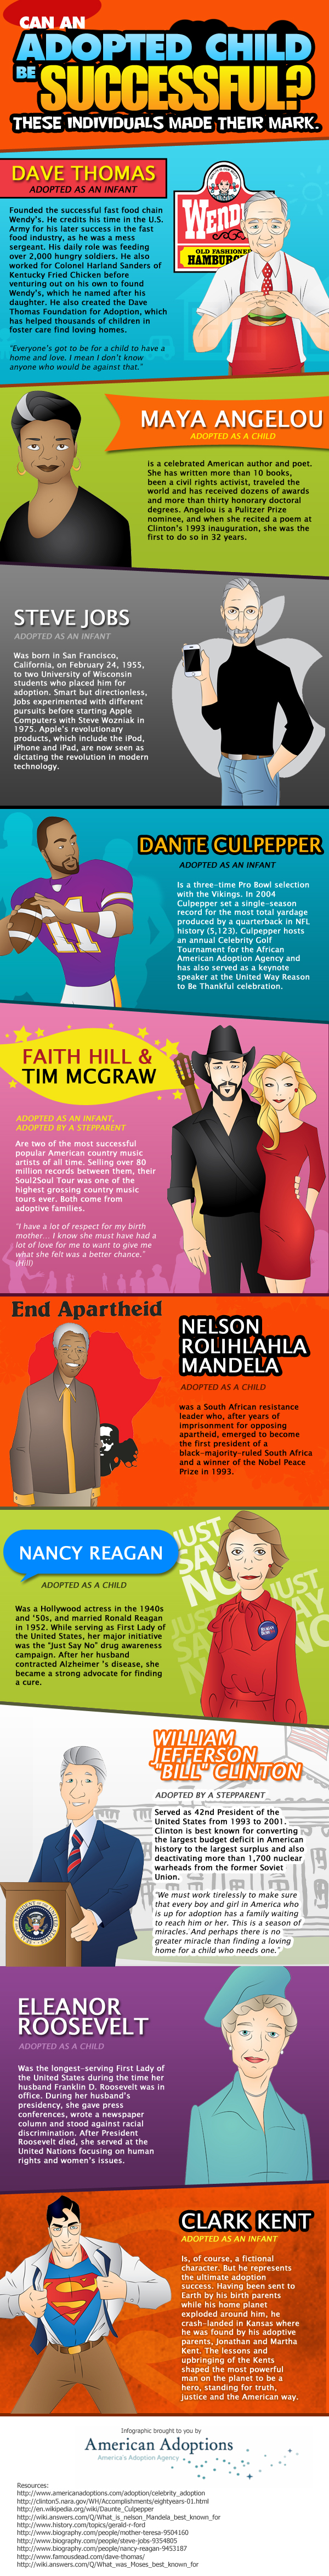 famous-adoptions-infographic